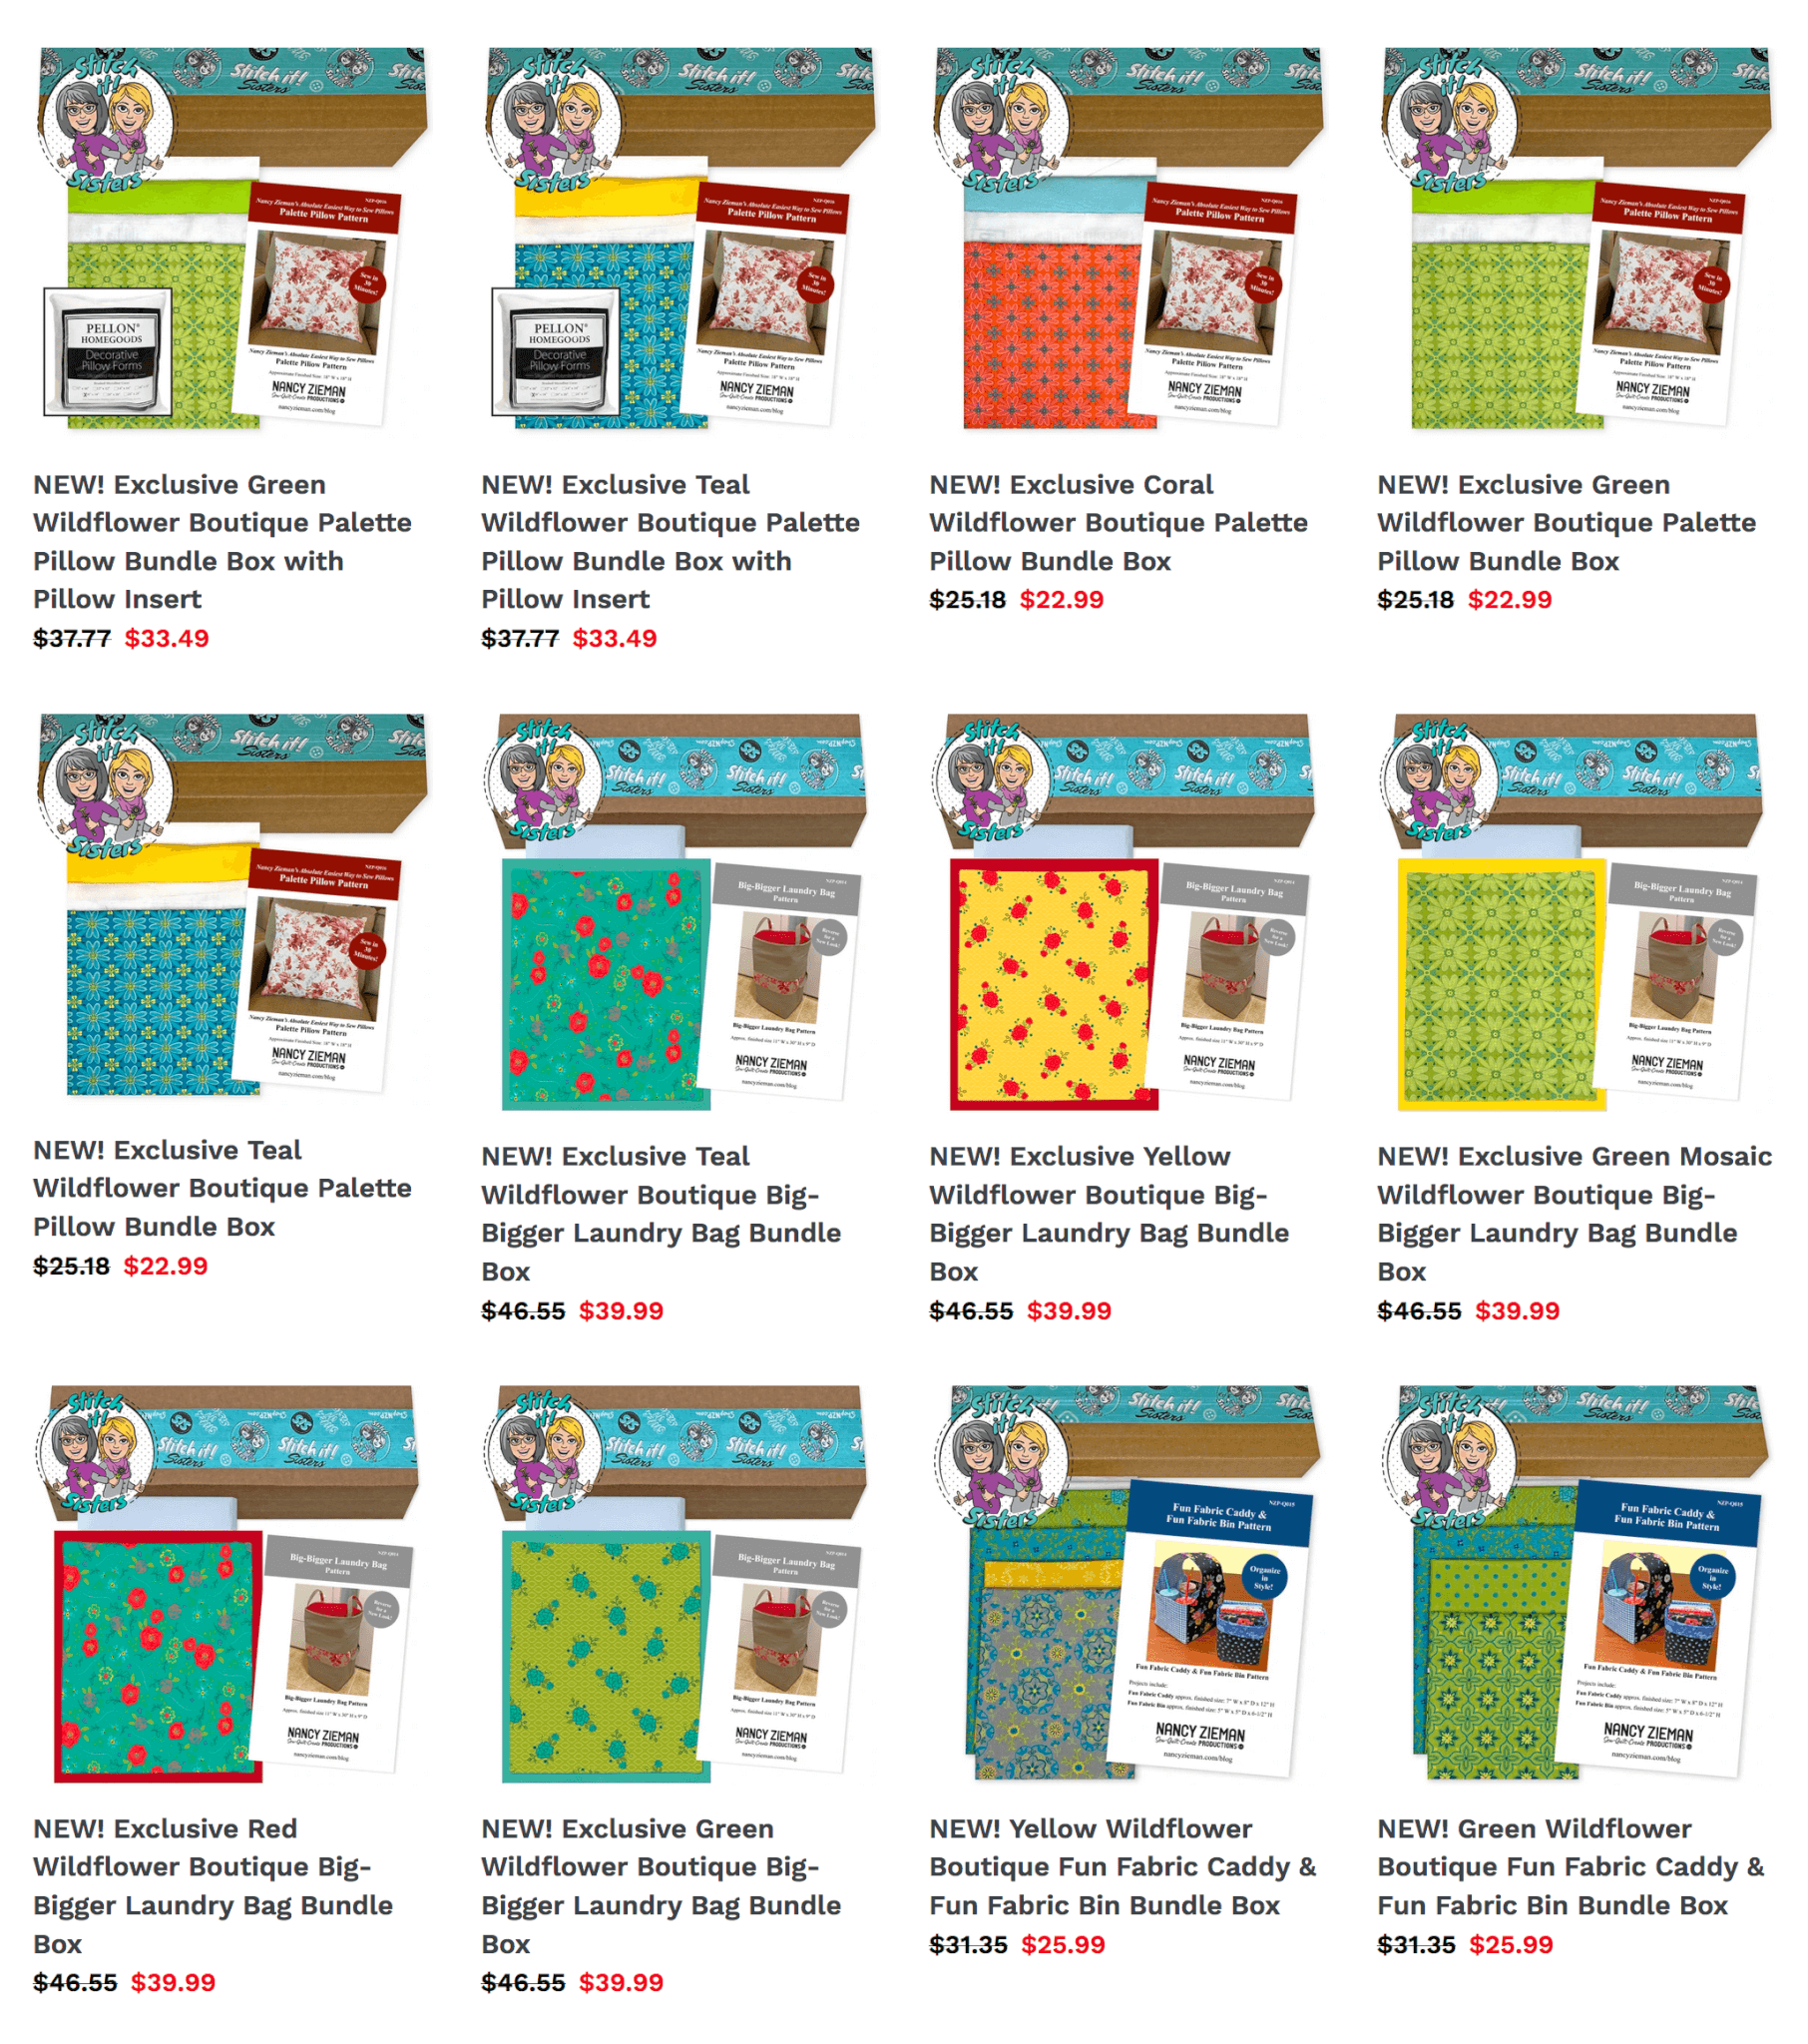 Buy Sewing Project Kits and Quilting Bundle Boxes by the Stitch it! Sisters at Nancy Zieman Productions at ShopNZP.com